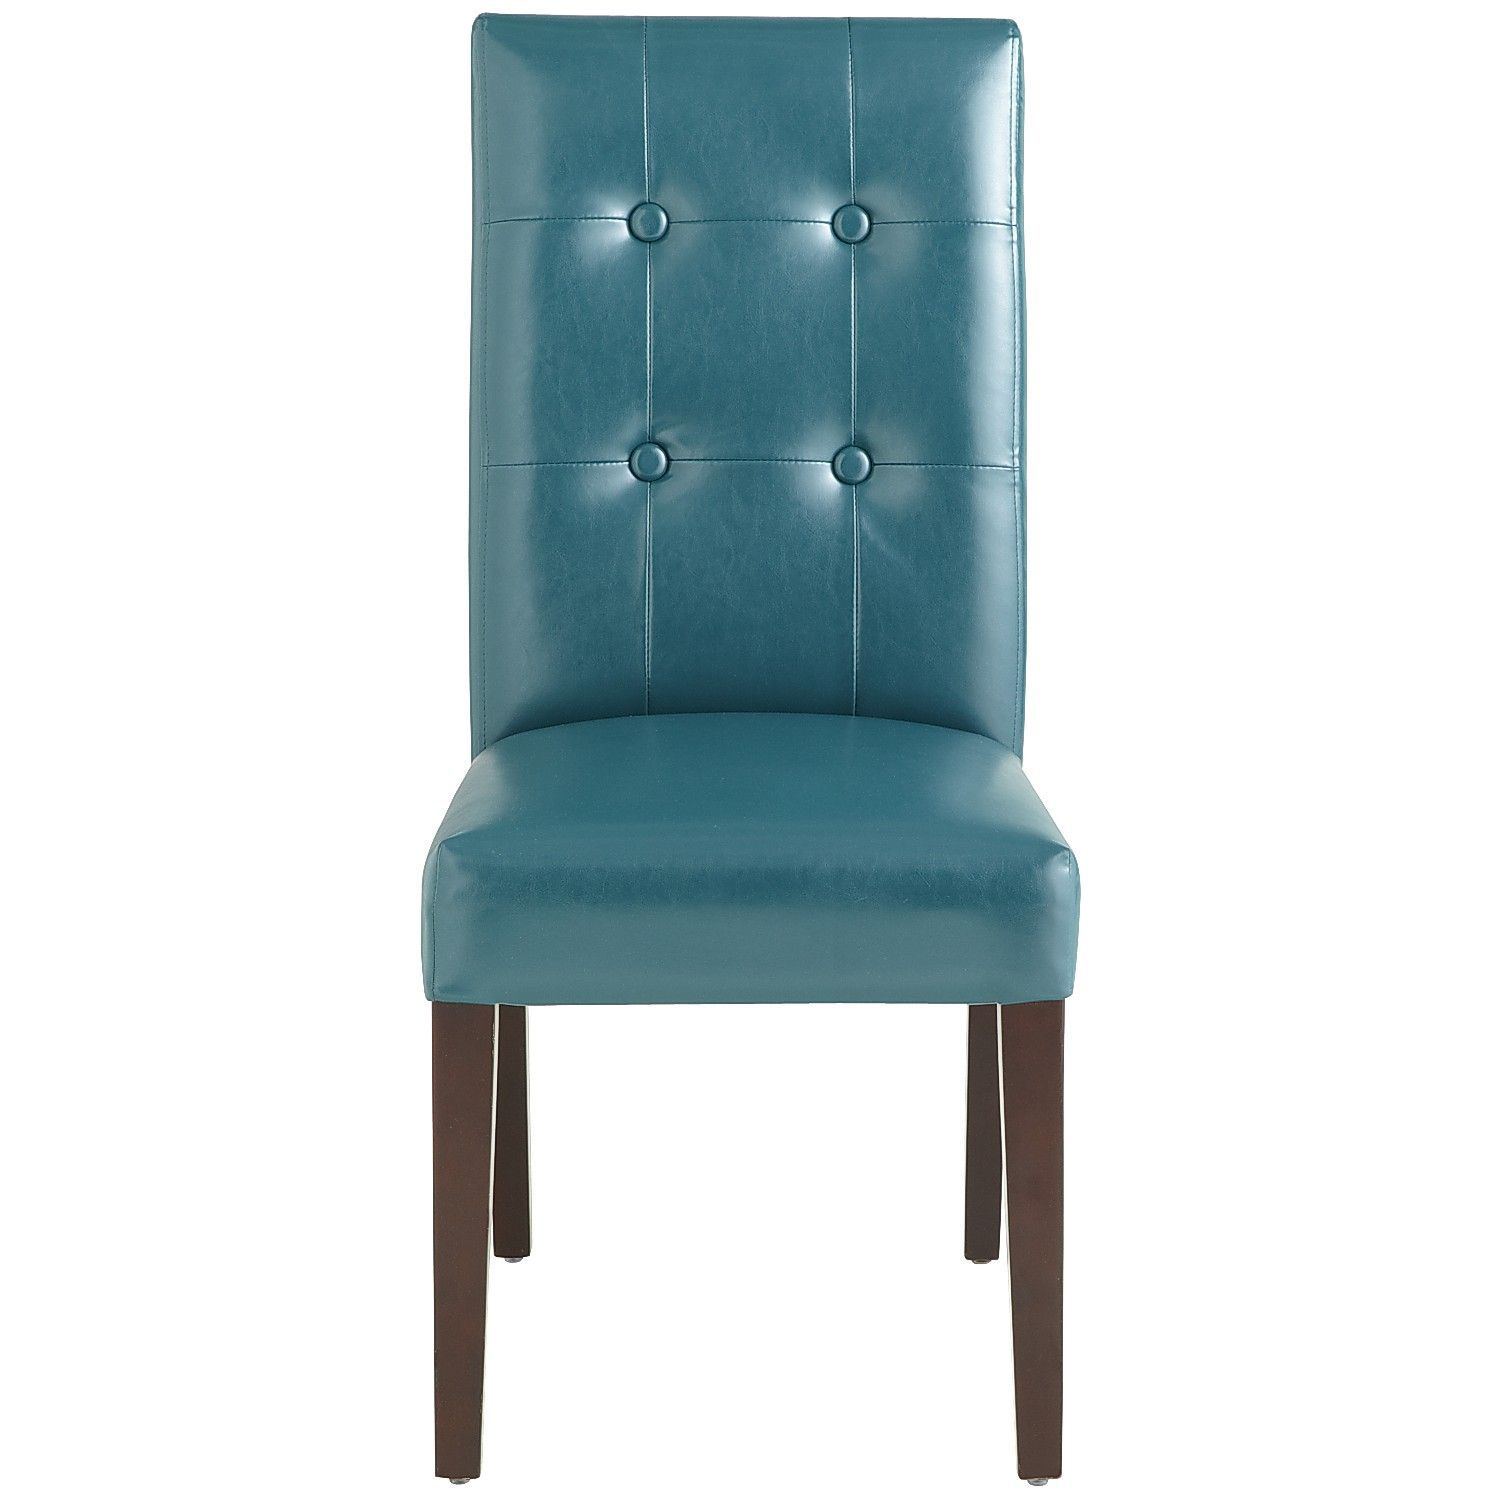 Mason Teal Dining Chair with Espresso Wood | Dining room ...